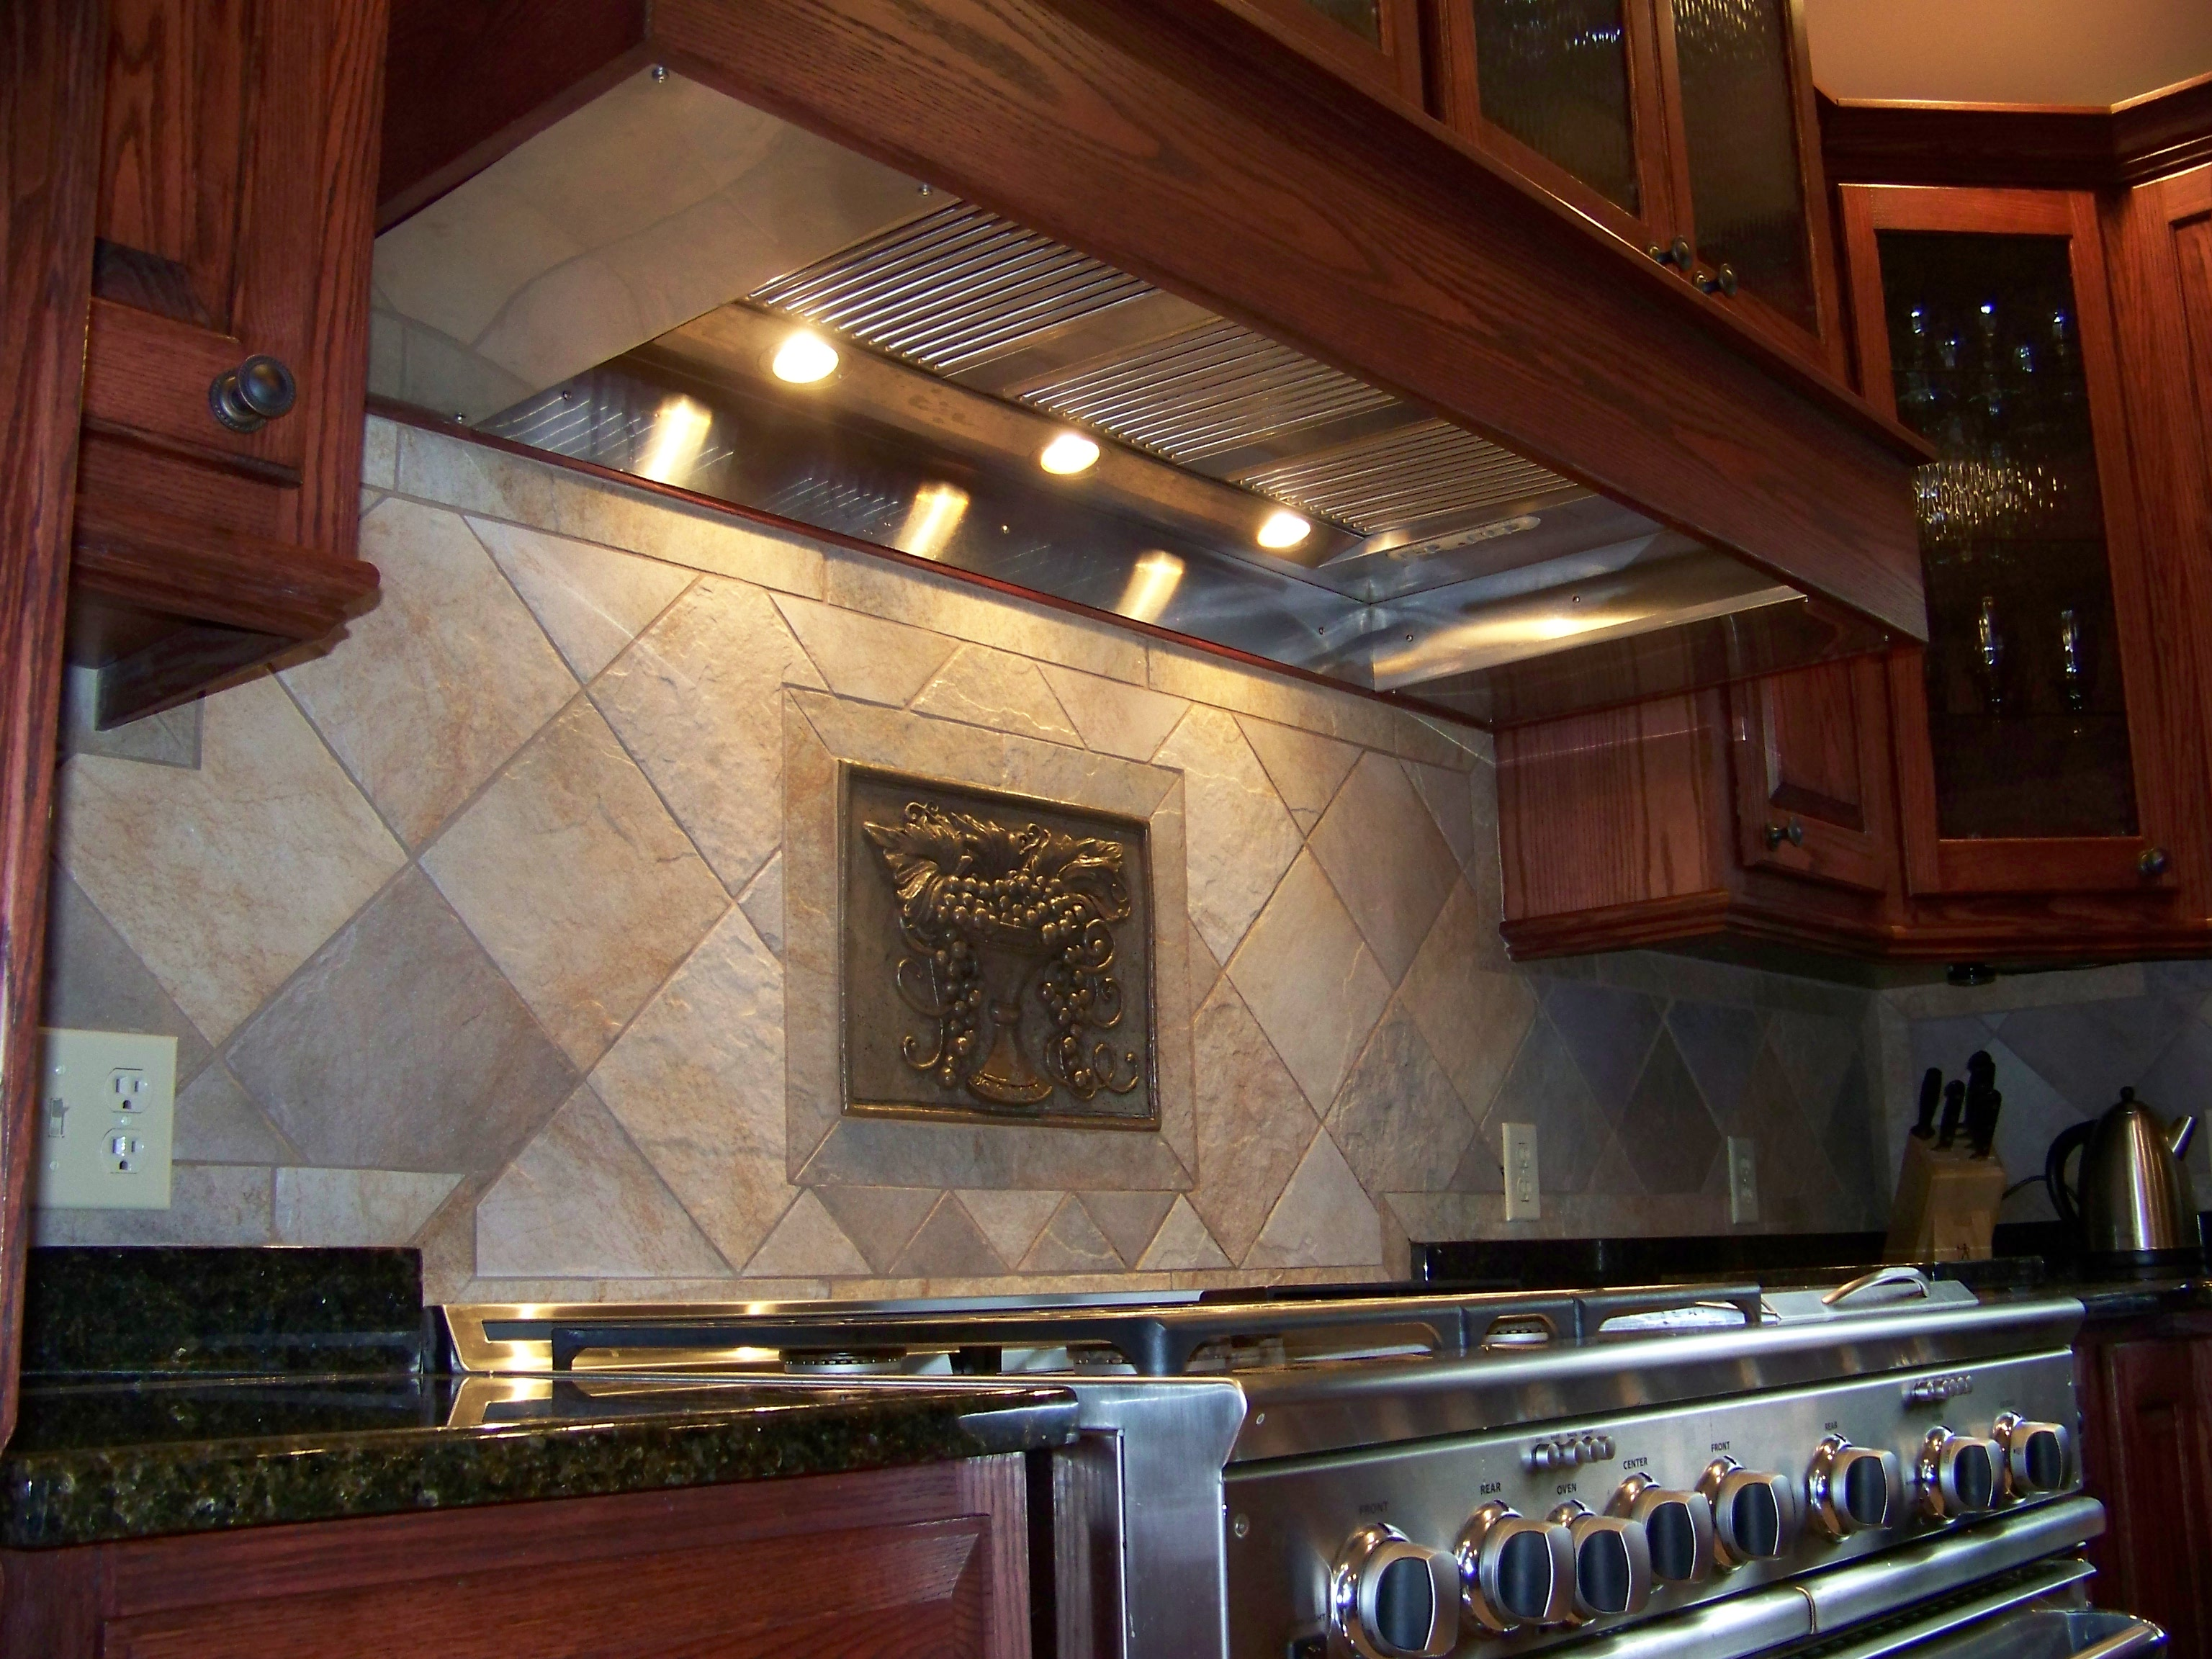 Bakaitus range hood close